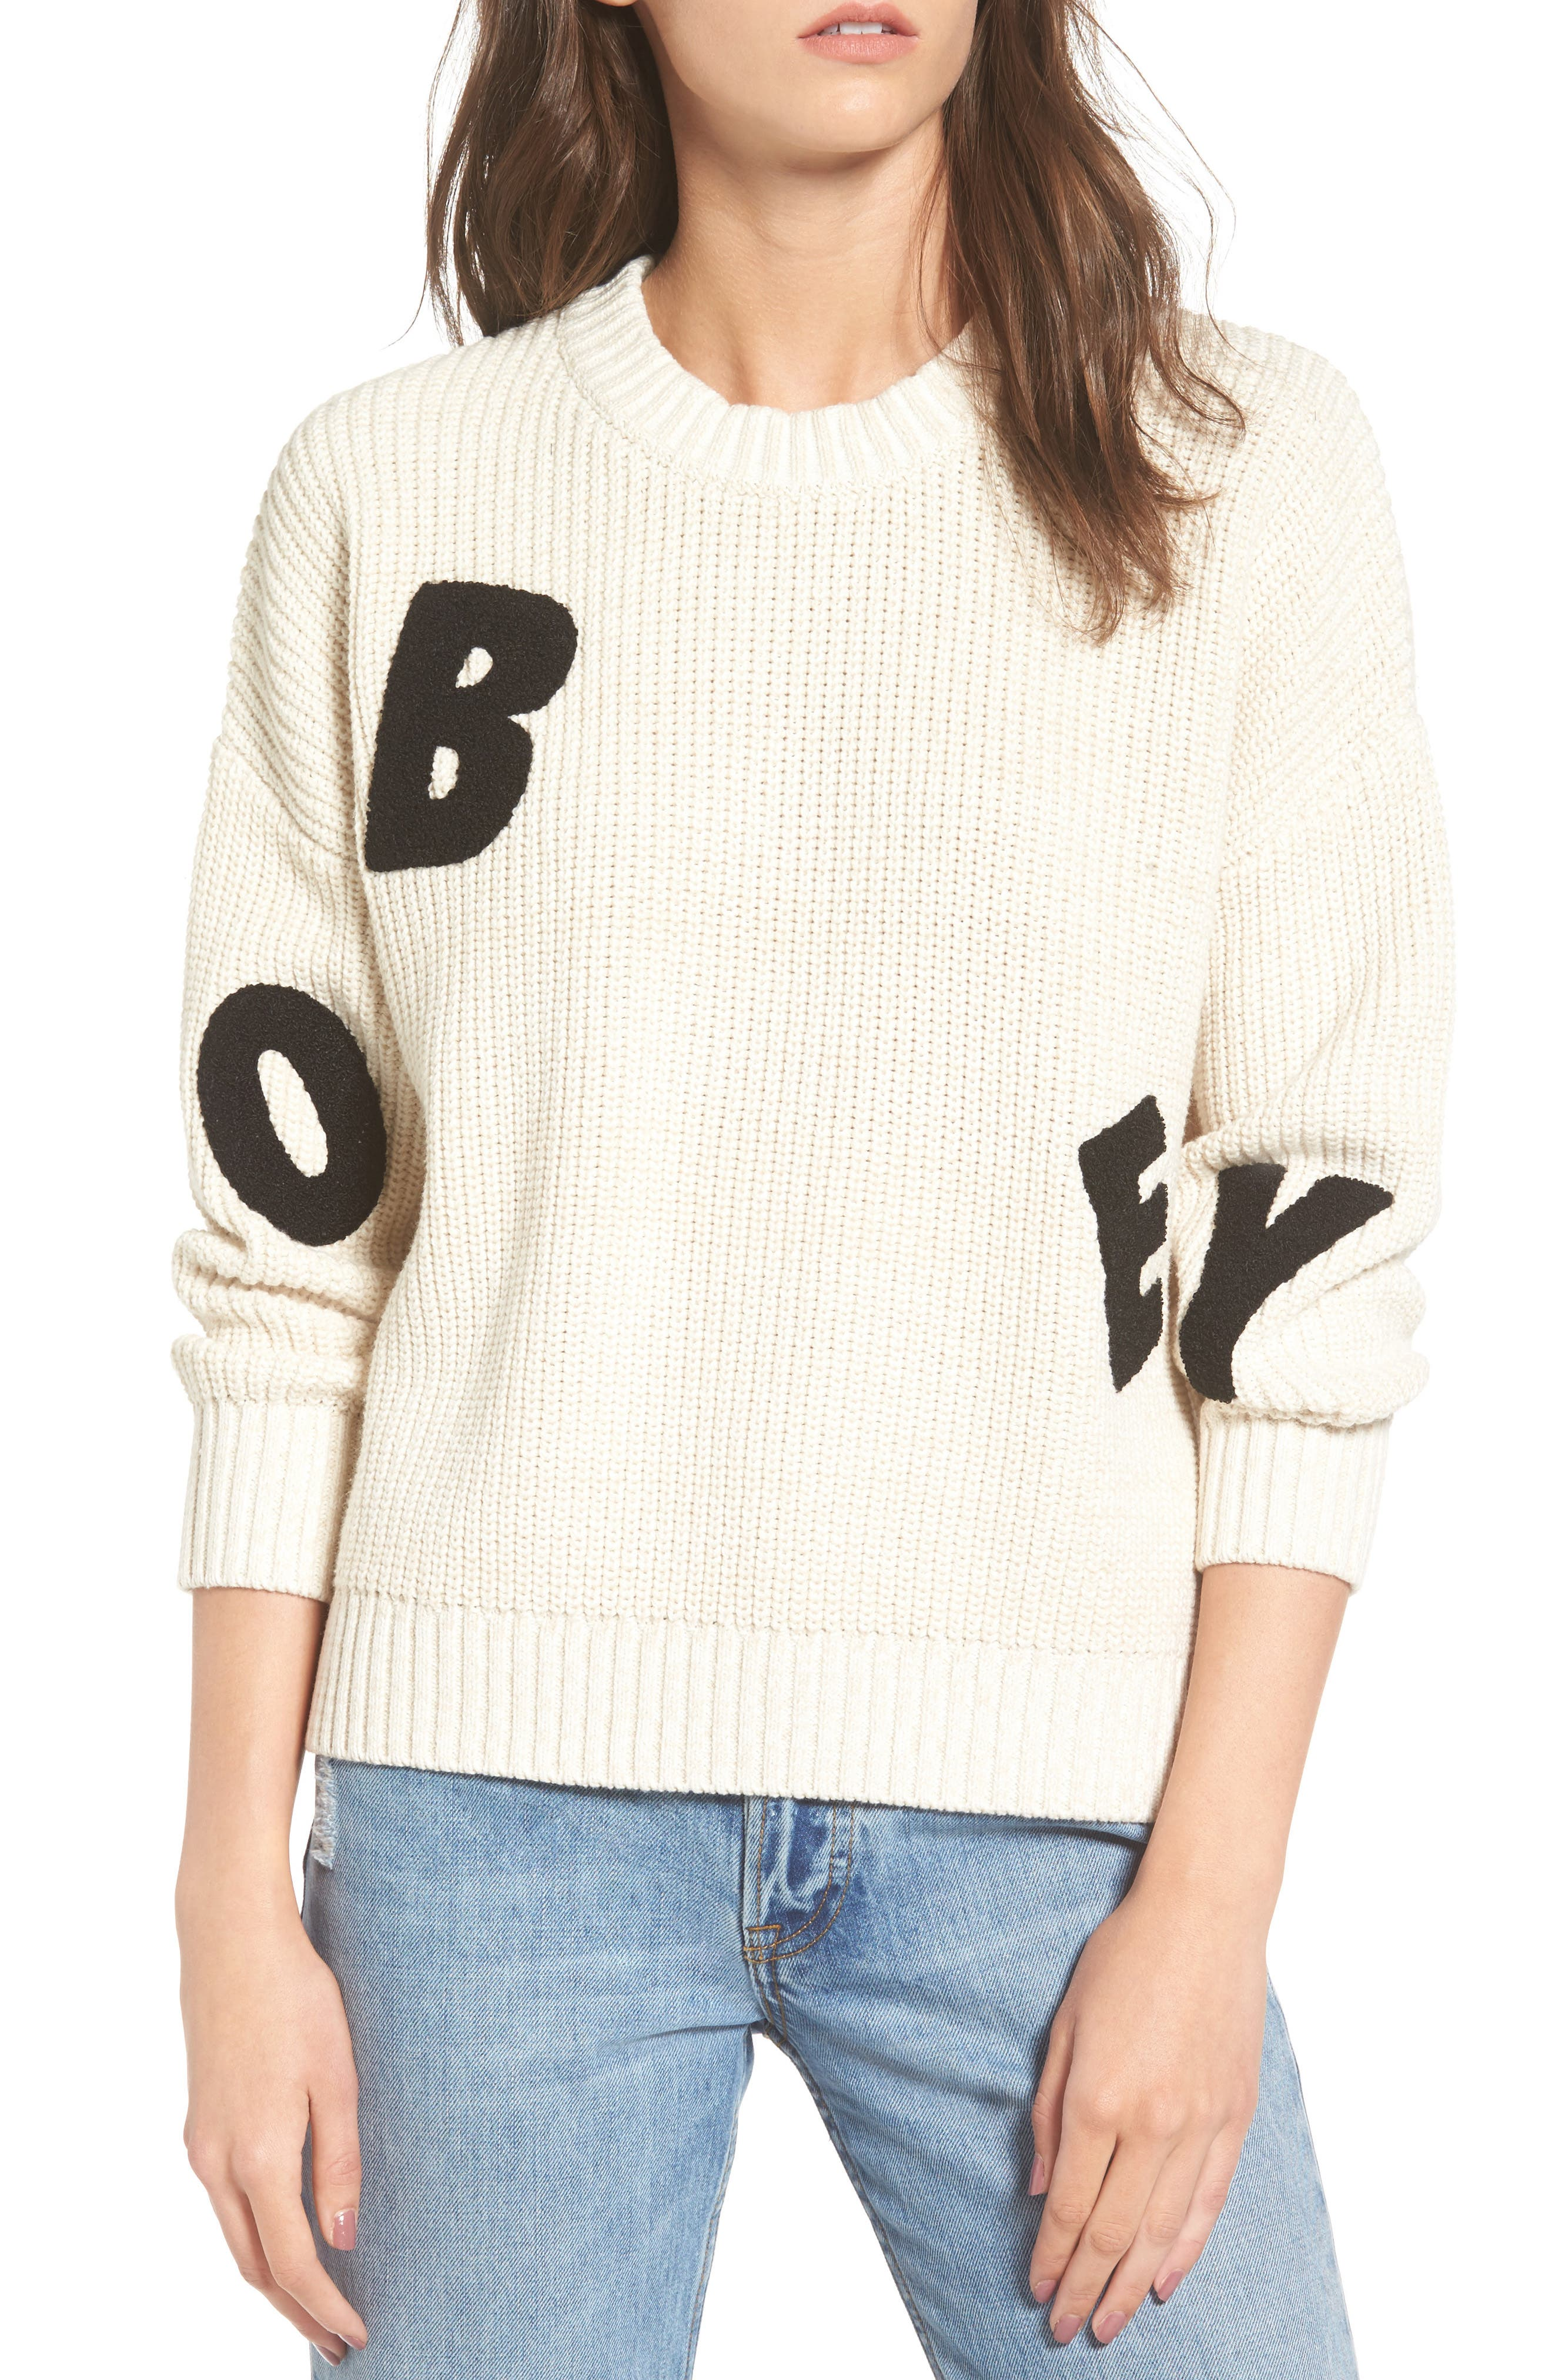 Obey Jumbled Knit Sweater